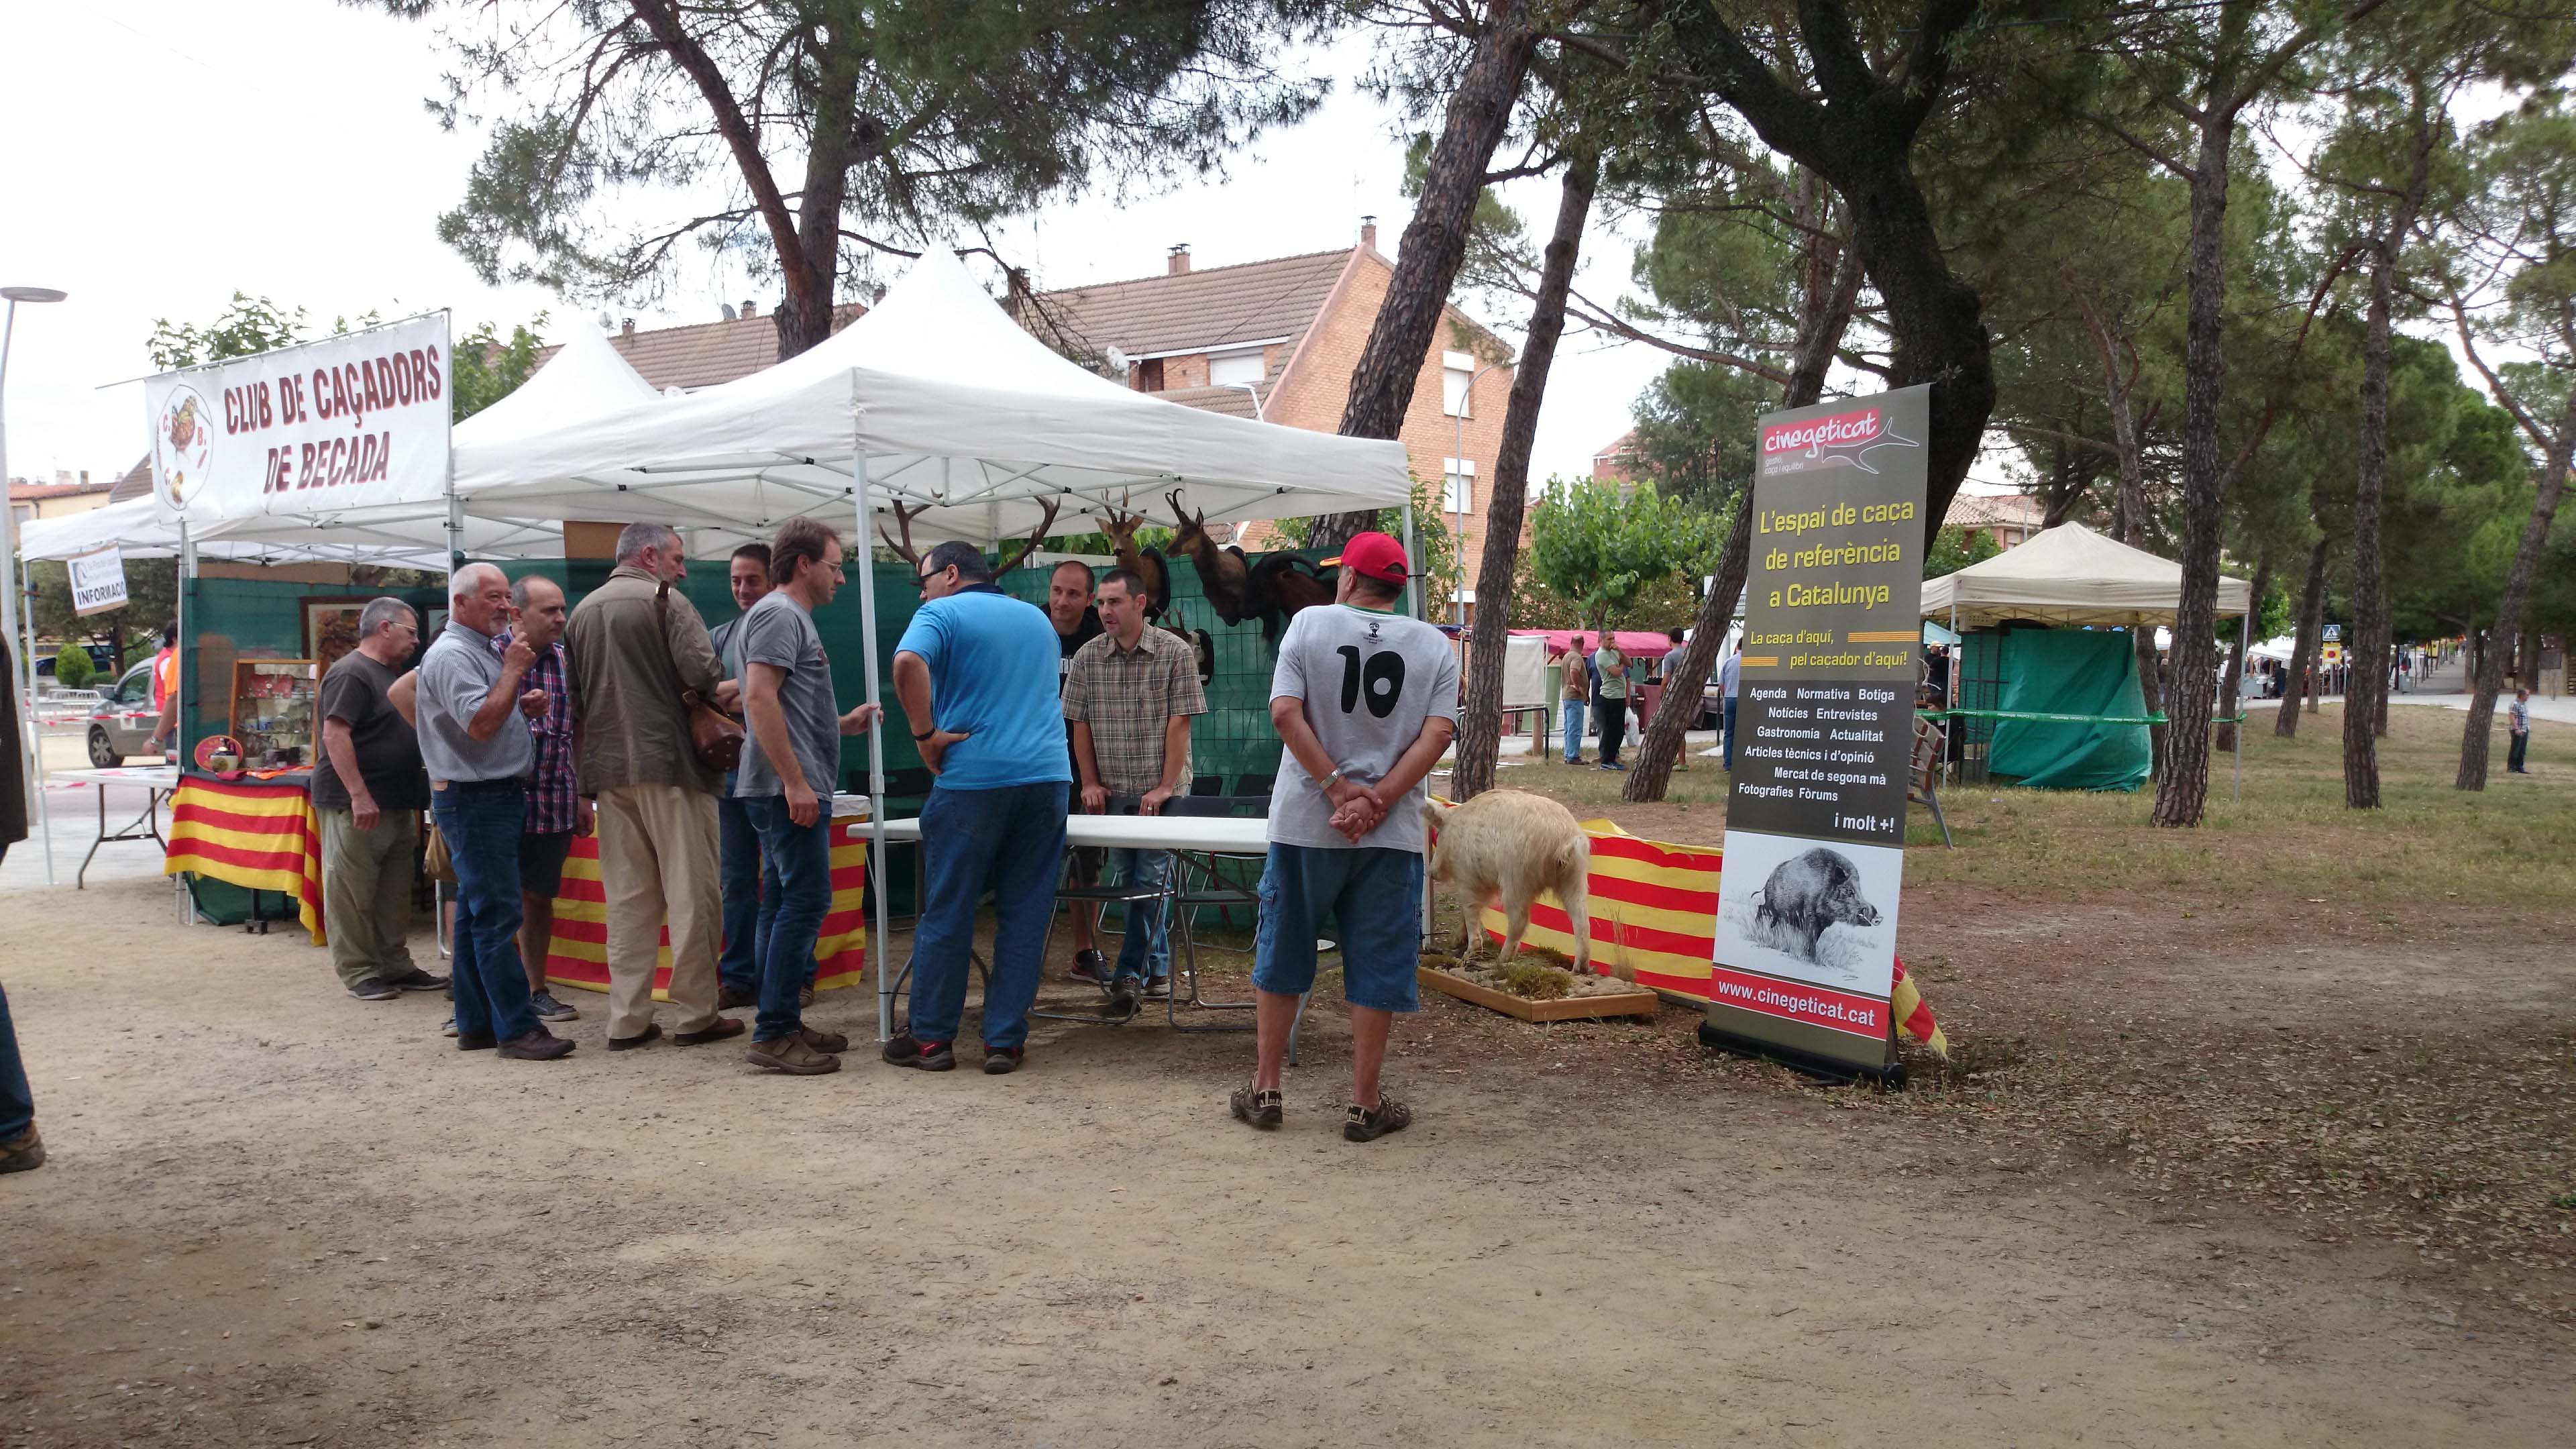 stand cinegeticat